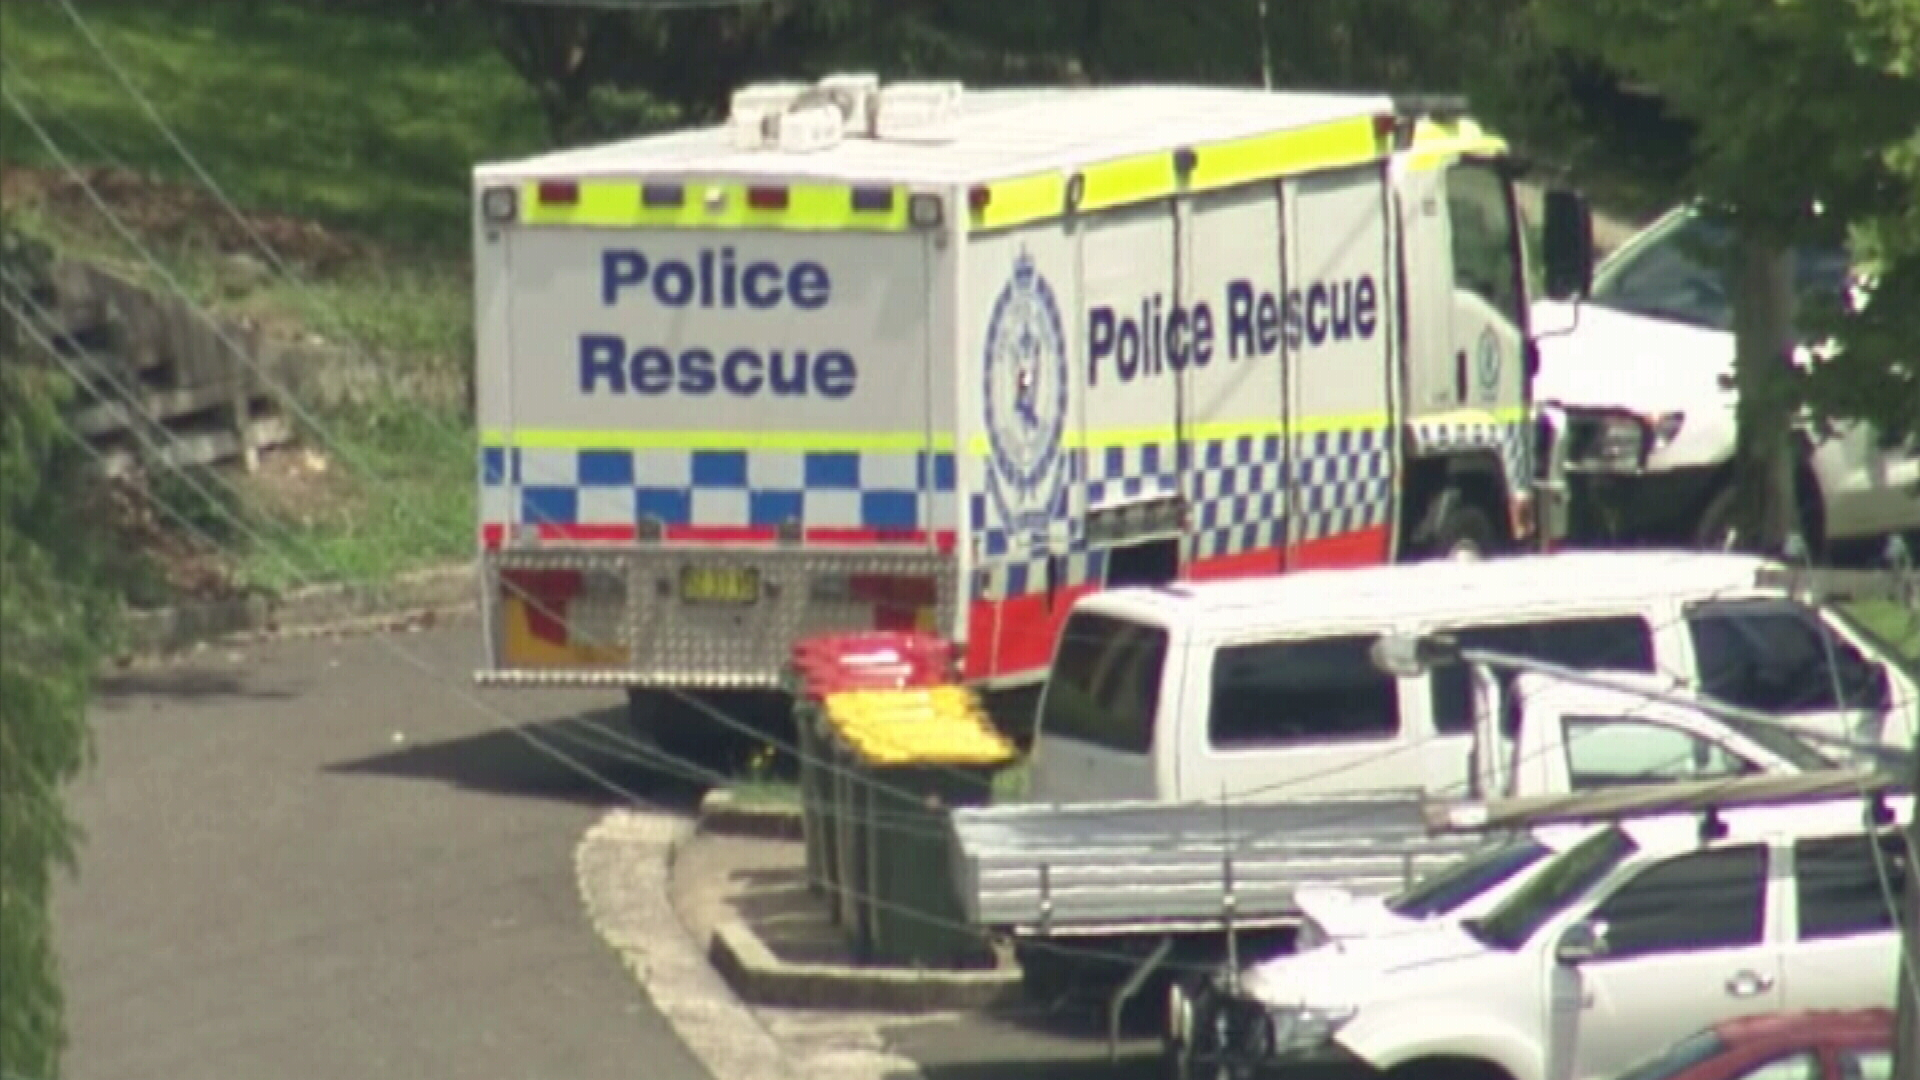 Man facing multiple charges after Maroubra standoff